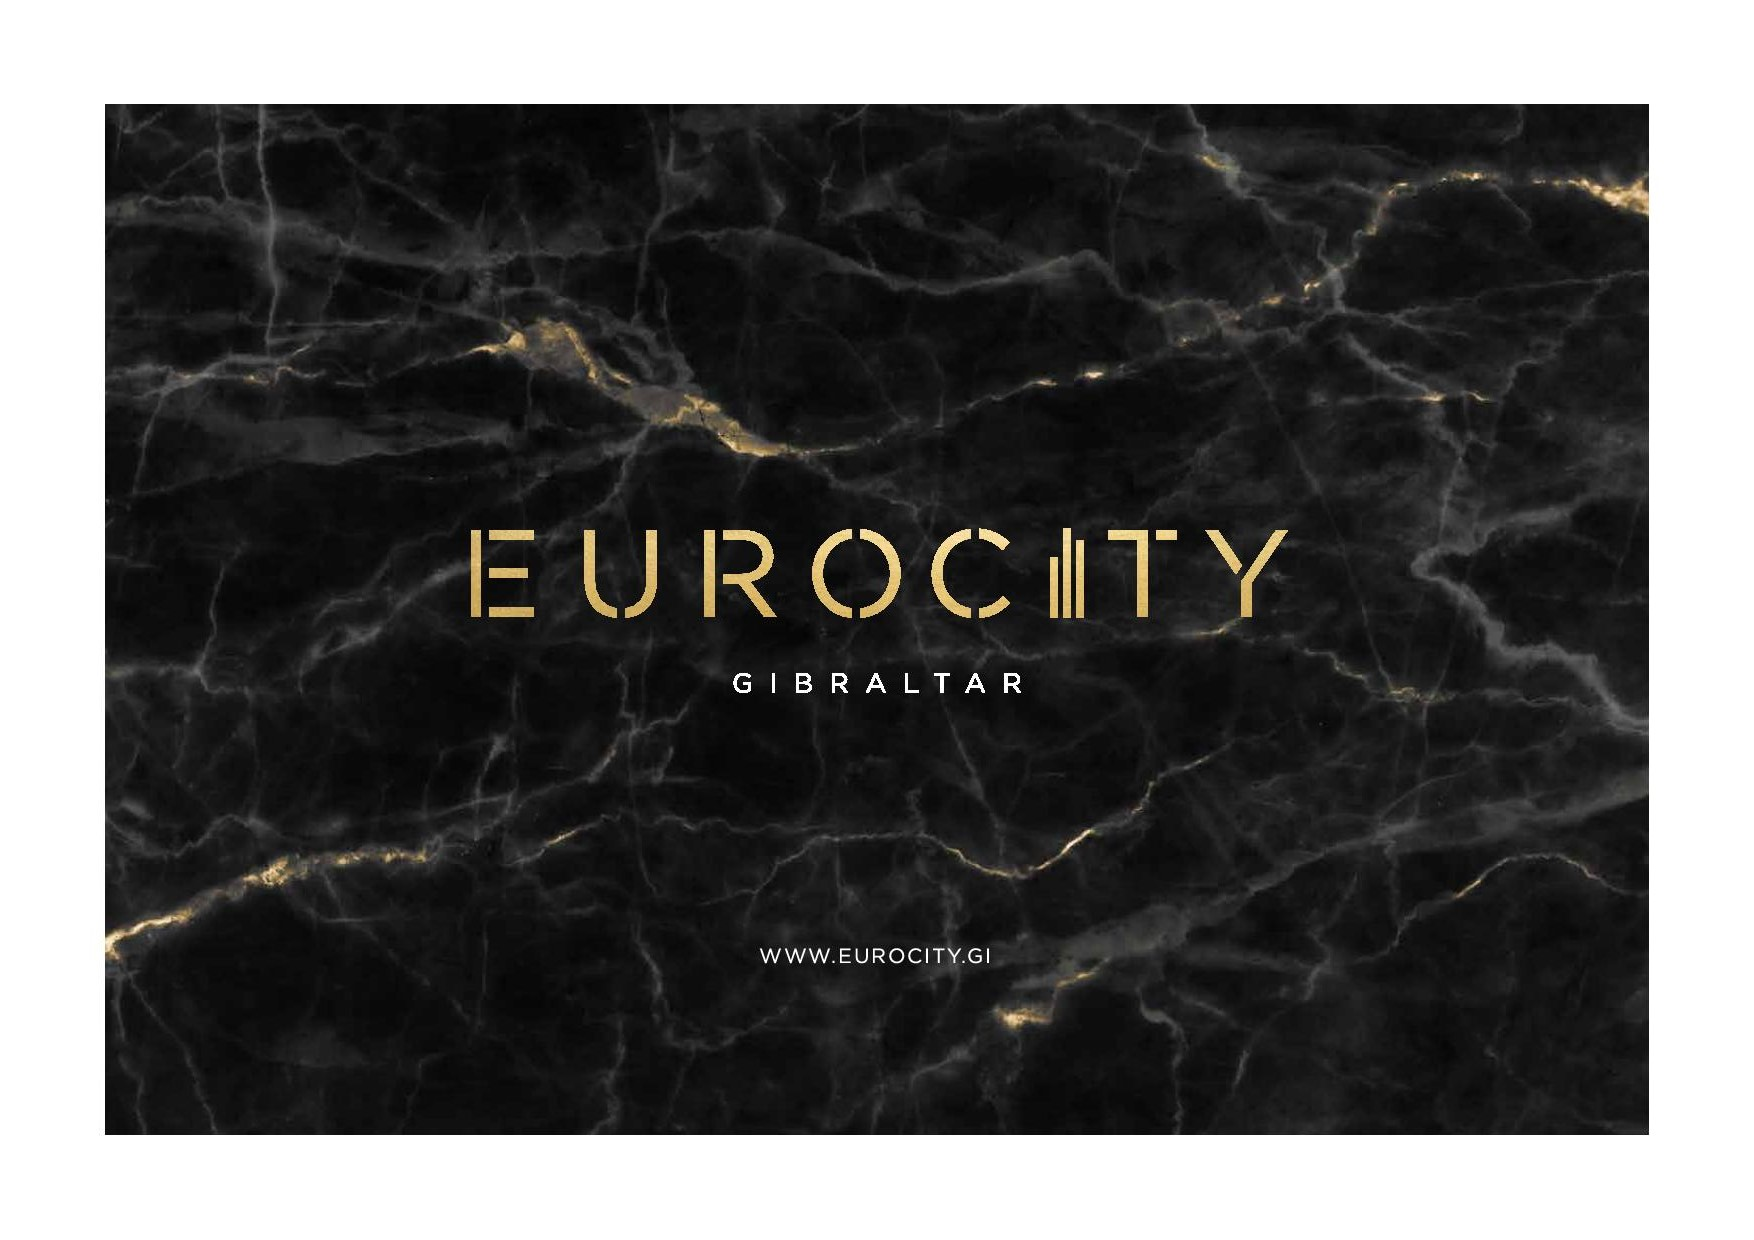 EuroCity virtual reality video released Image